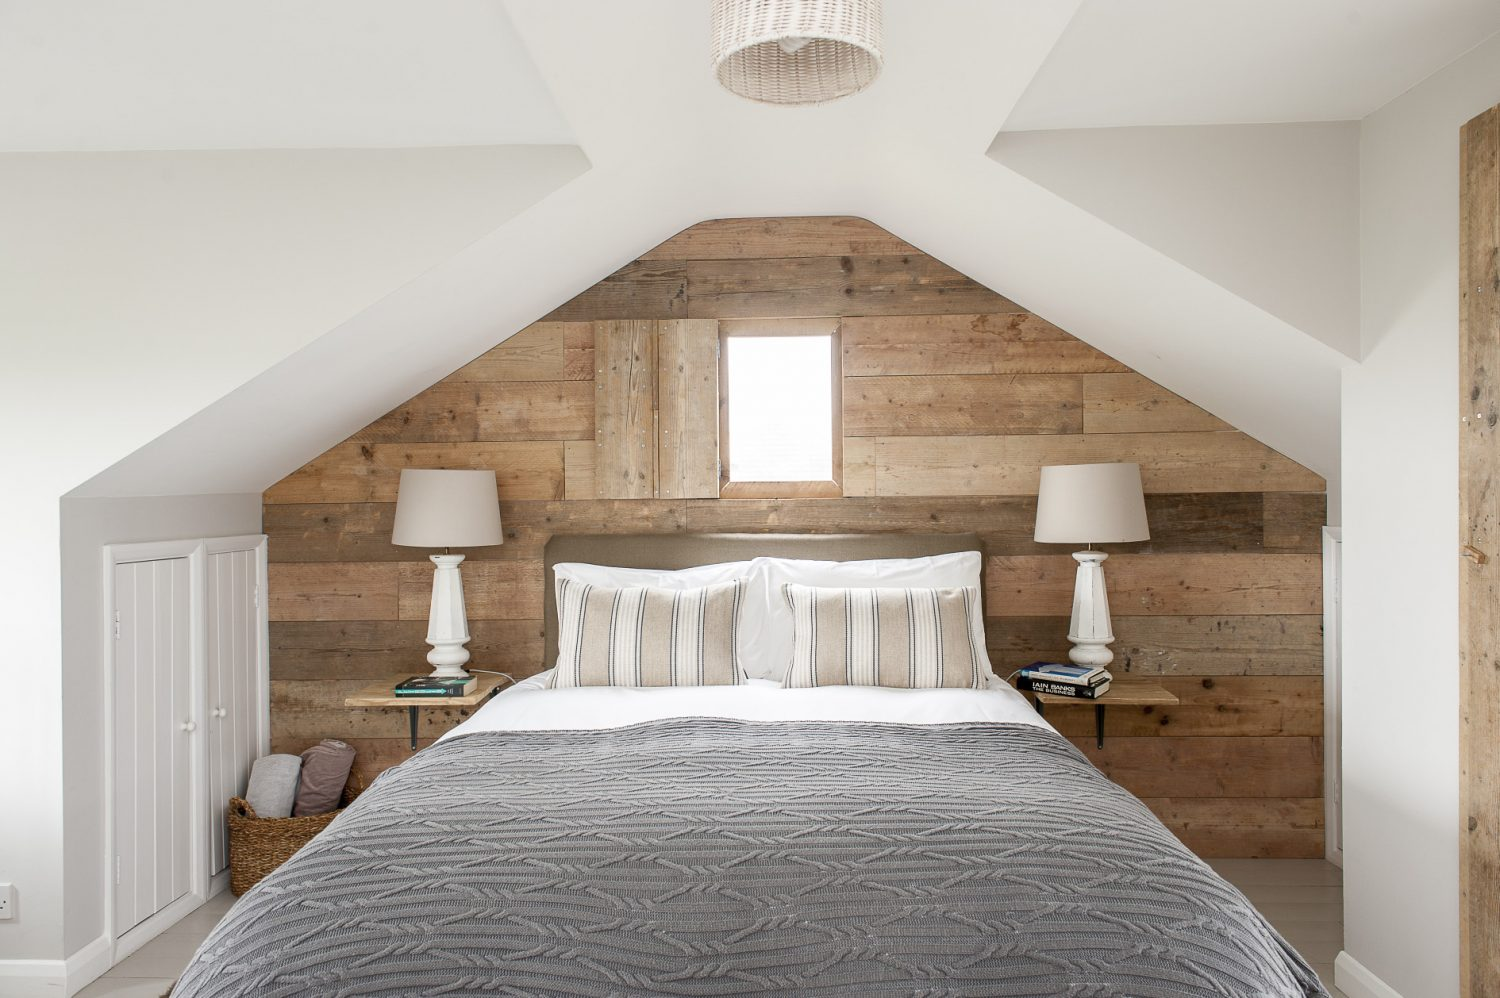 The wall of the master bedroom is clad in the same sanded scaffolding planks. The bedside lamps are from McCully & Crane. Francesca designed the headboard. The cushions are covered in Ralph Lauren fabric and the throw is from John Lewis